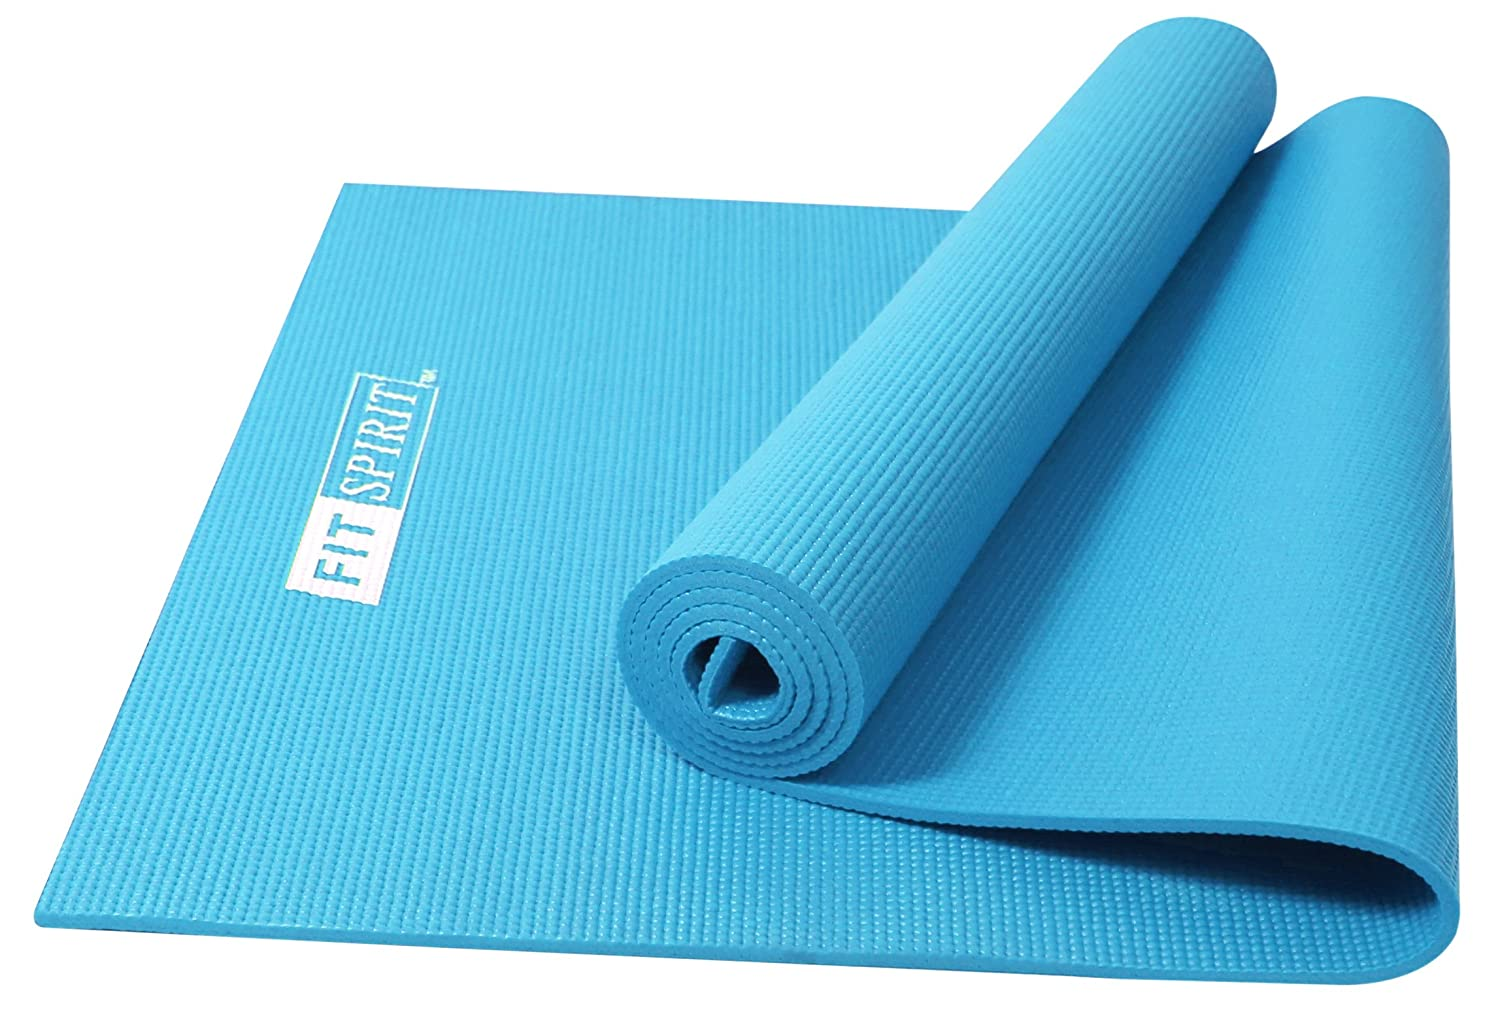 Amazon.com : Fit Spirit Premium Printed Yoga Mat : Sports & Outdoors